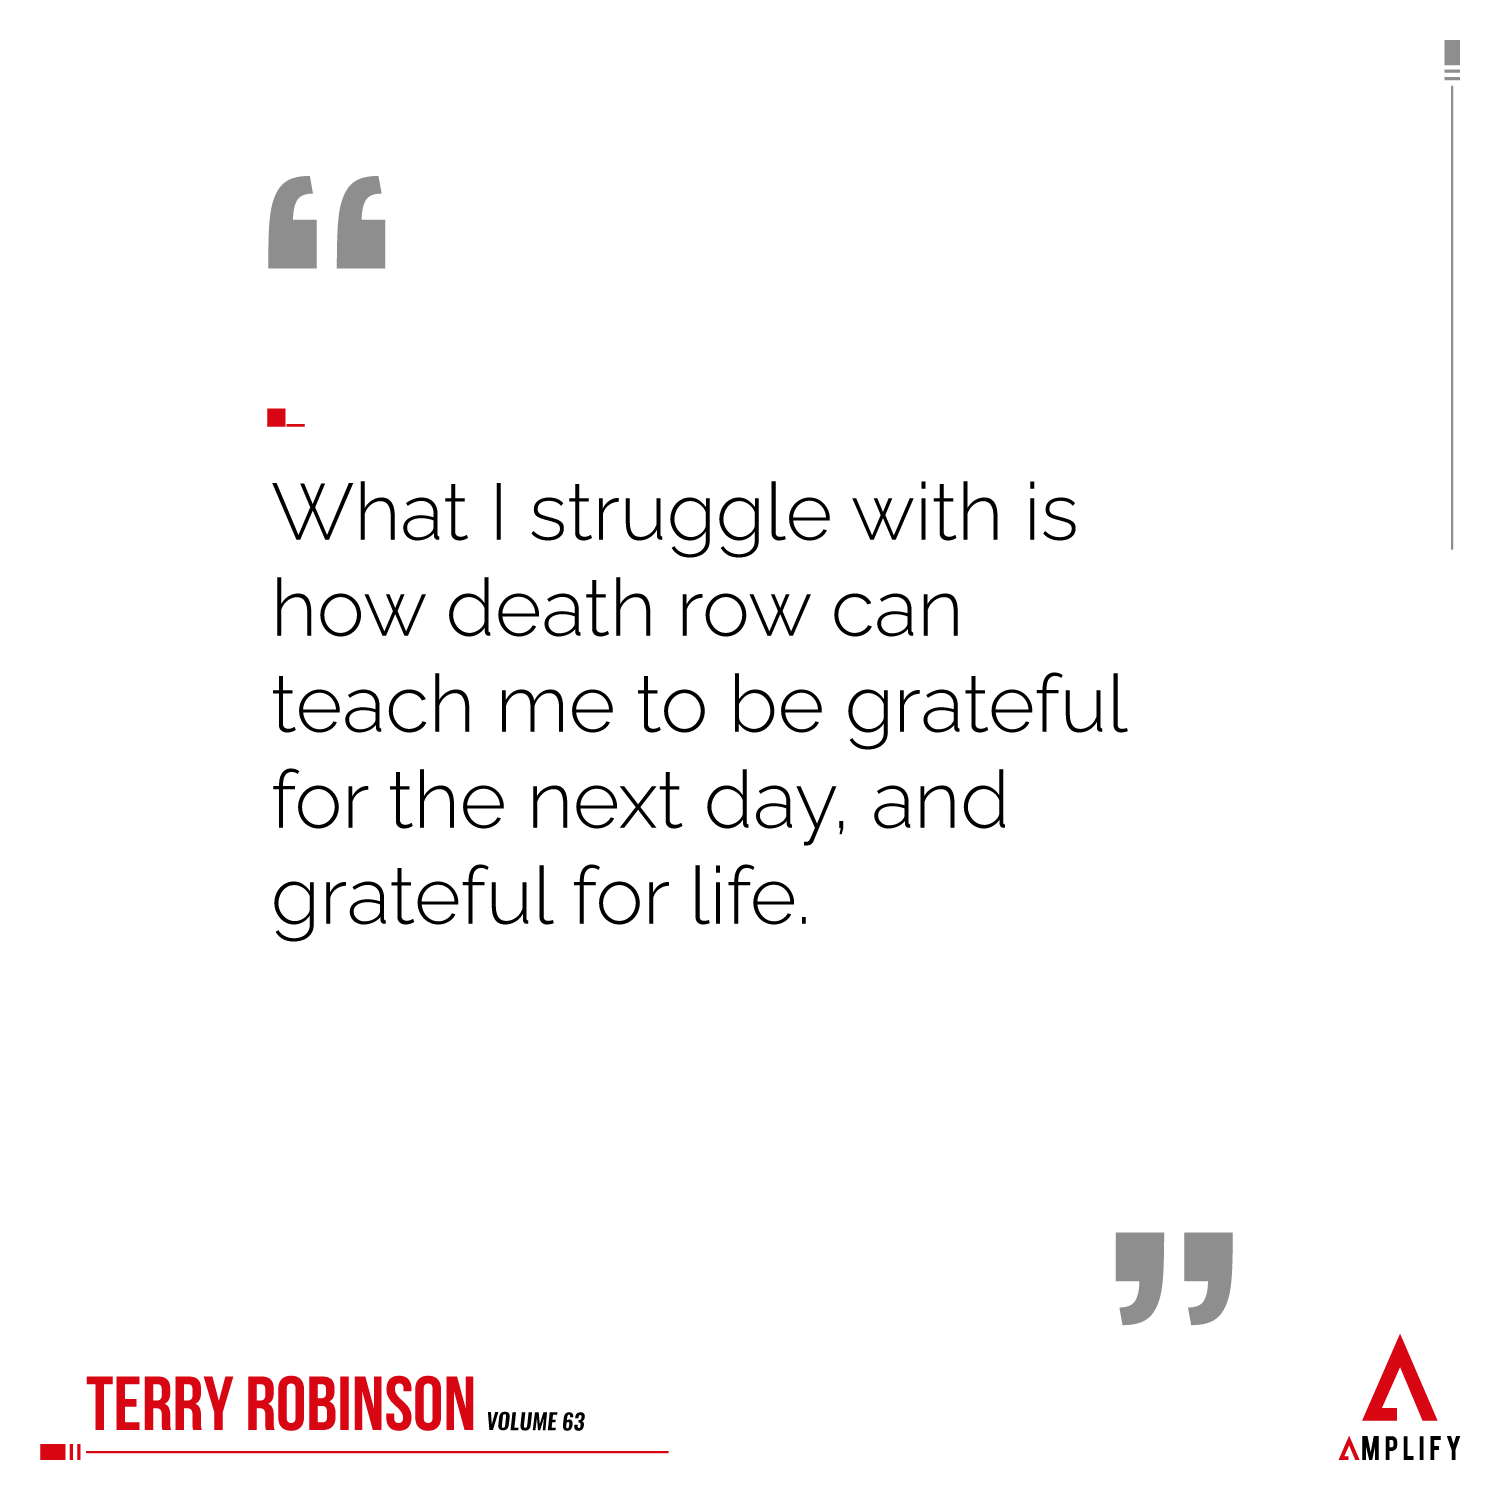 Quote: What I struggle with is how death row can teach me to be grateful for the next day, and grateful for life.